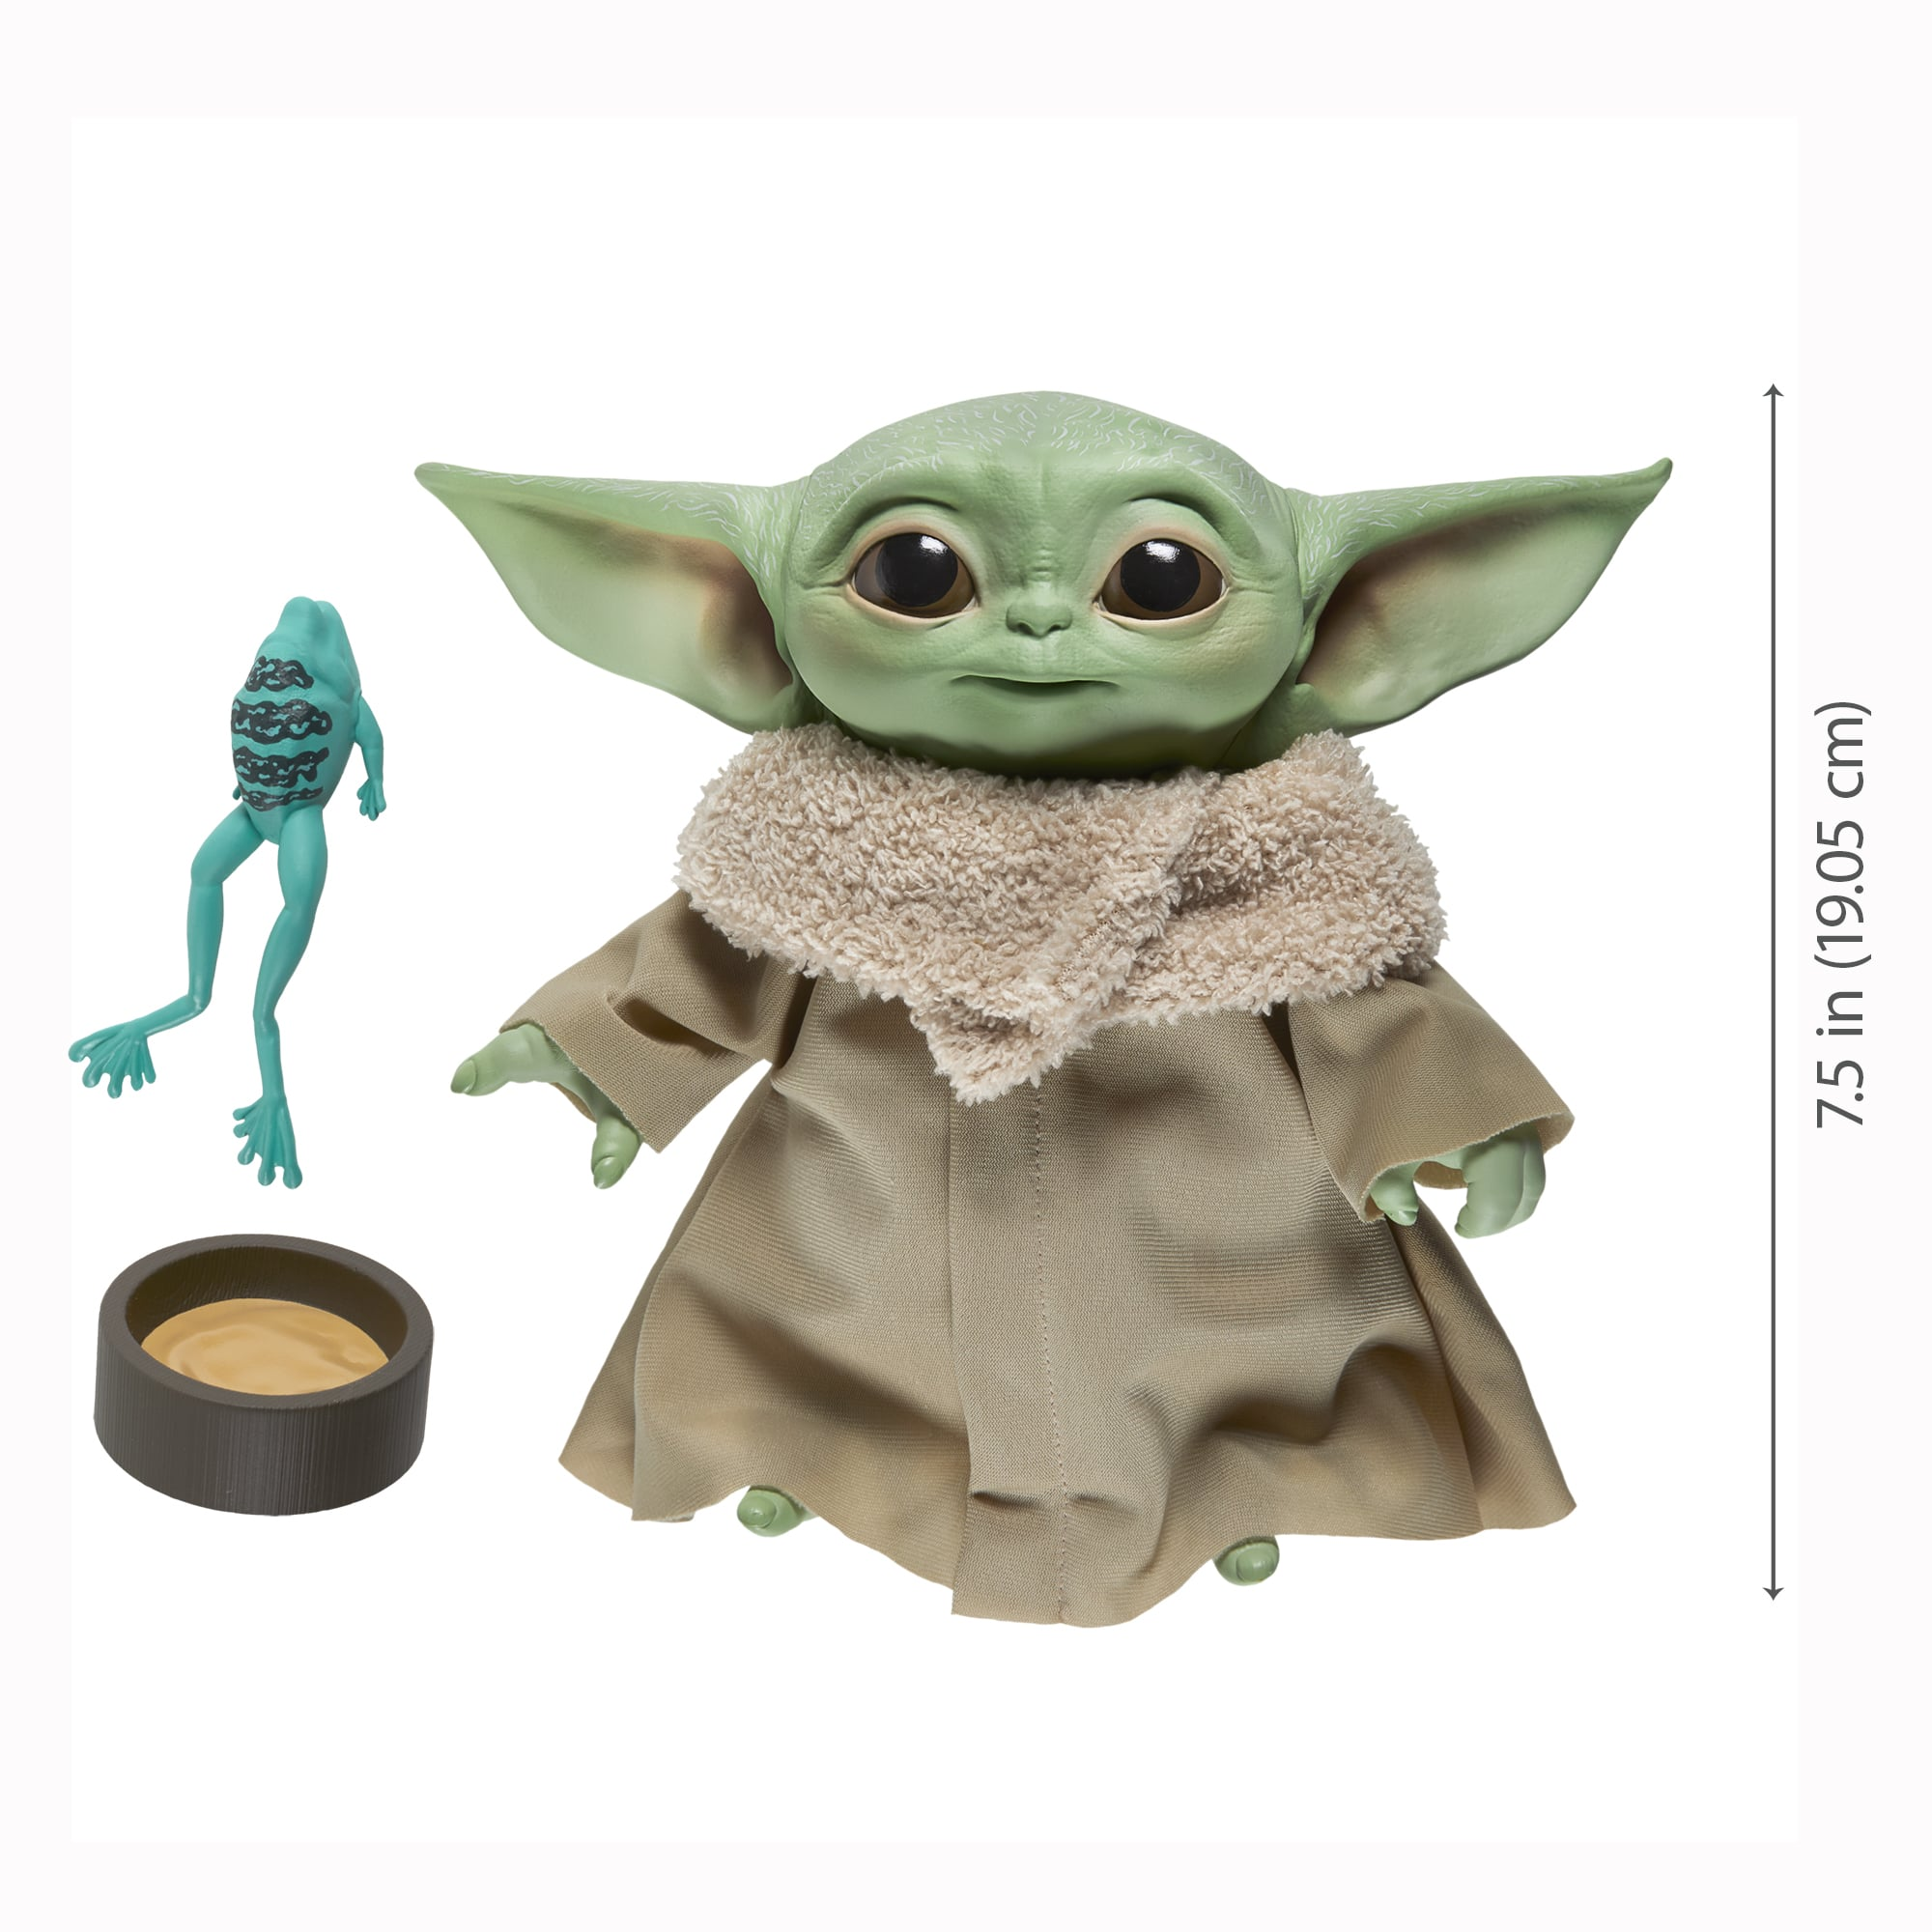 Hasbro's first Baby Yoda toys are here and they're freaking adorable 17